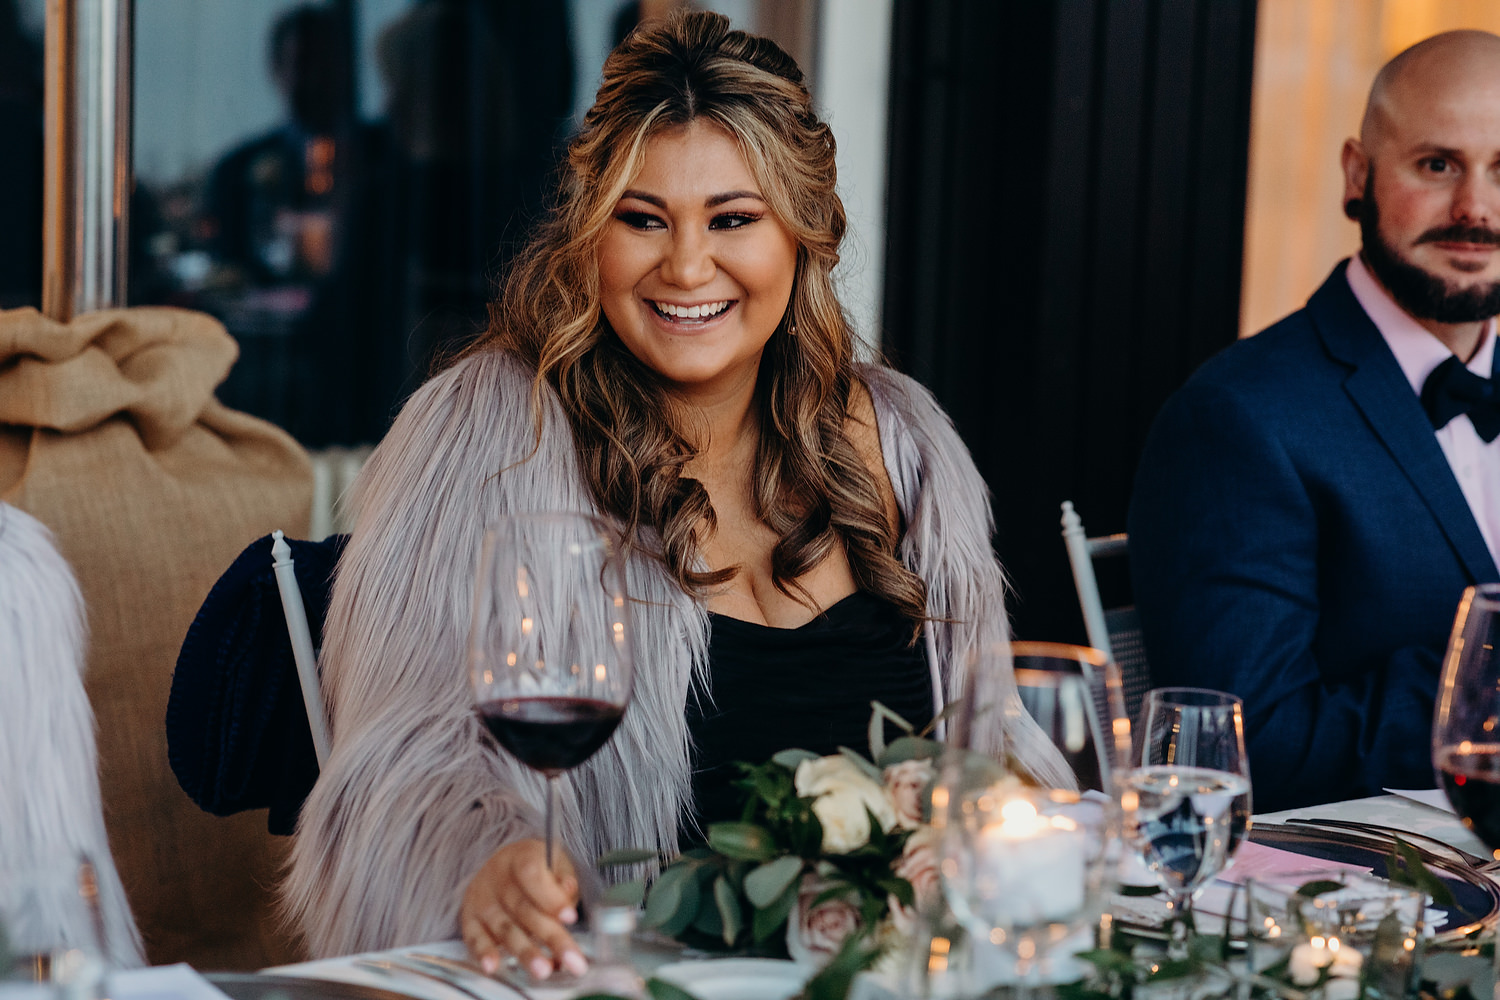 bridesmaid smiling at wedding table